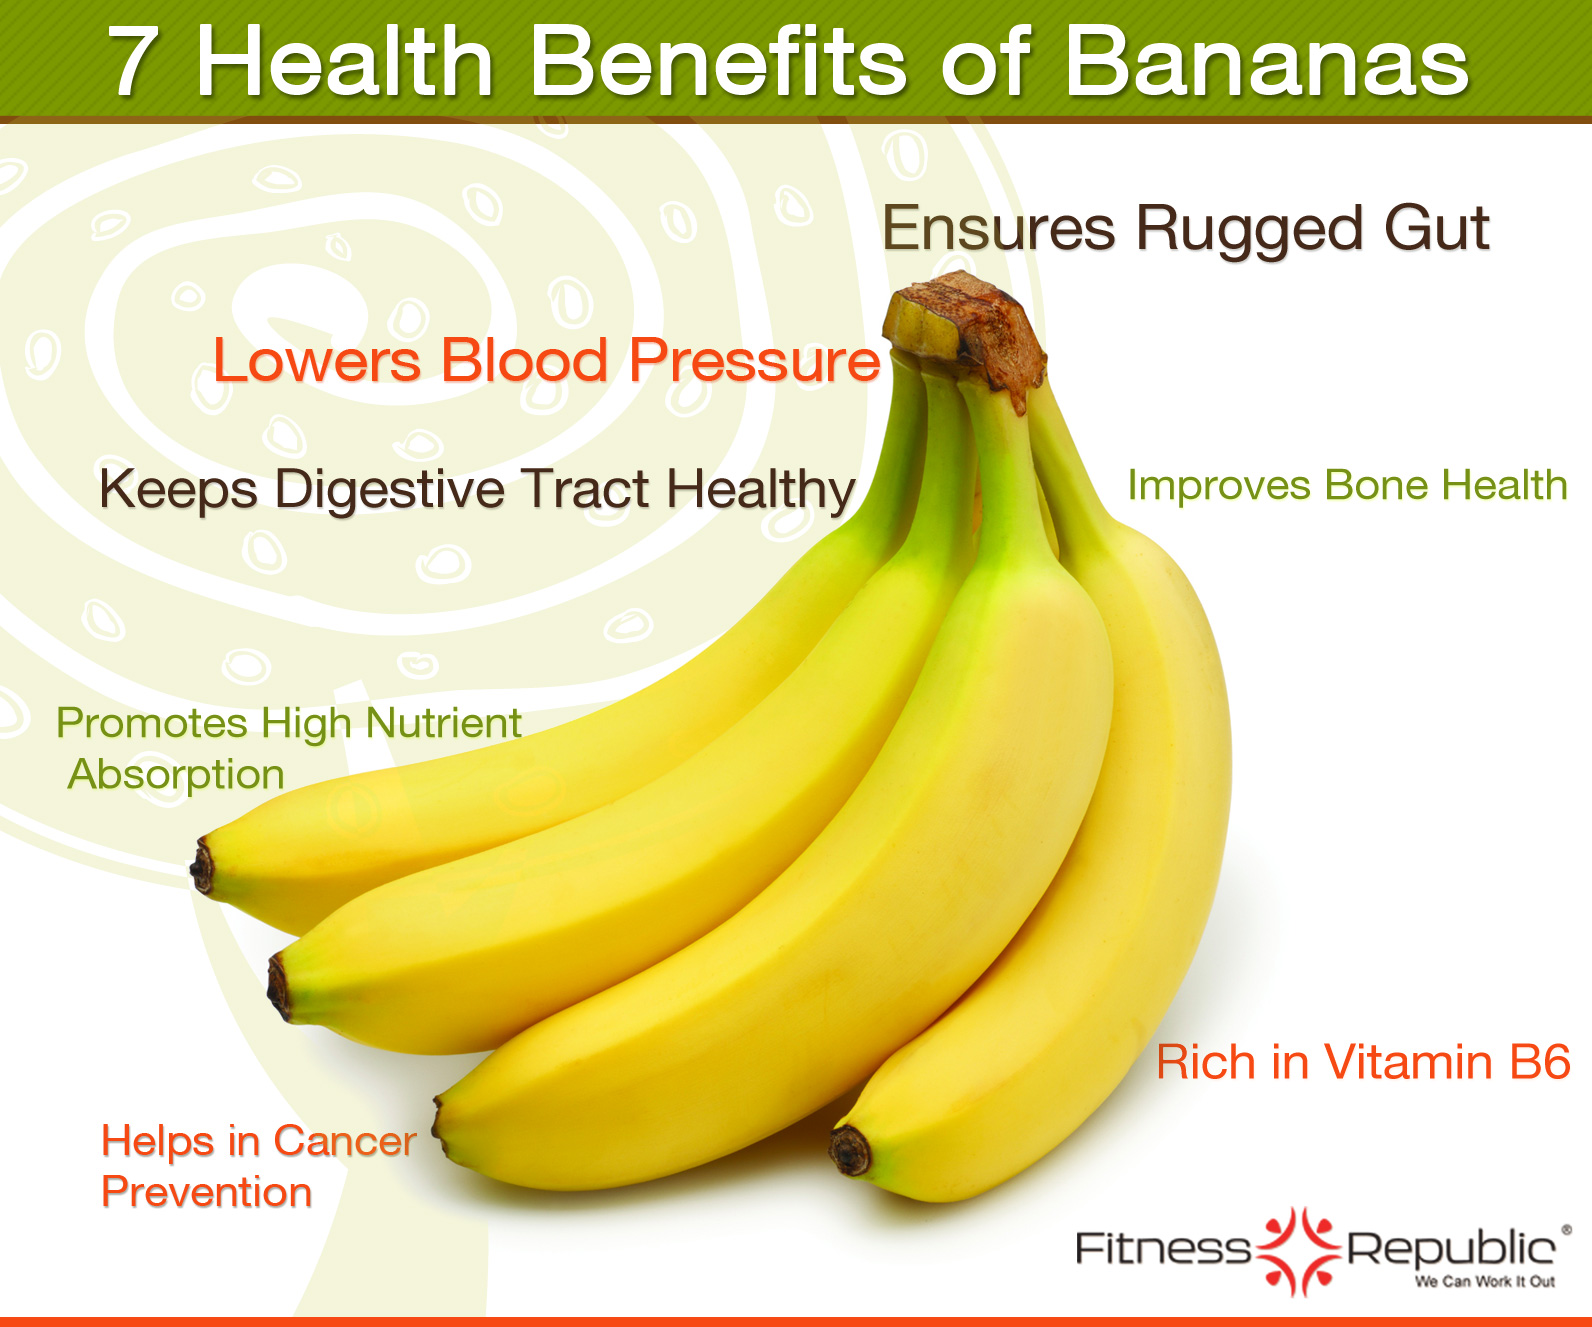 health-benefits-of-bananas_525b9547e6af3